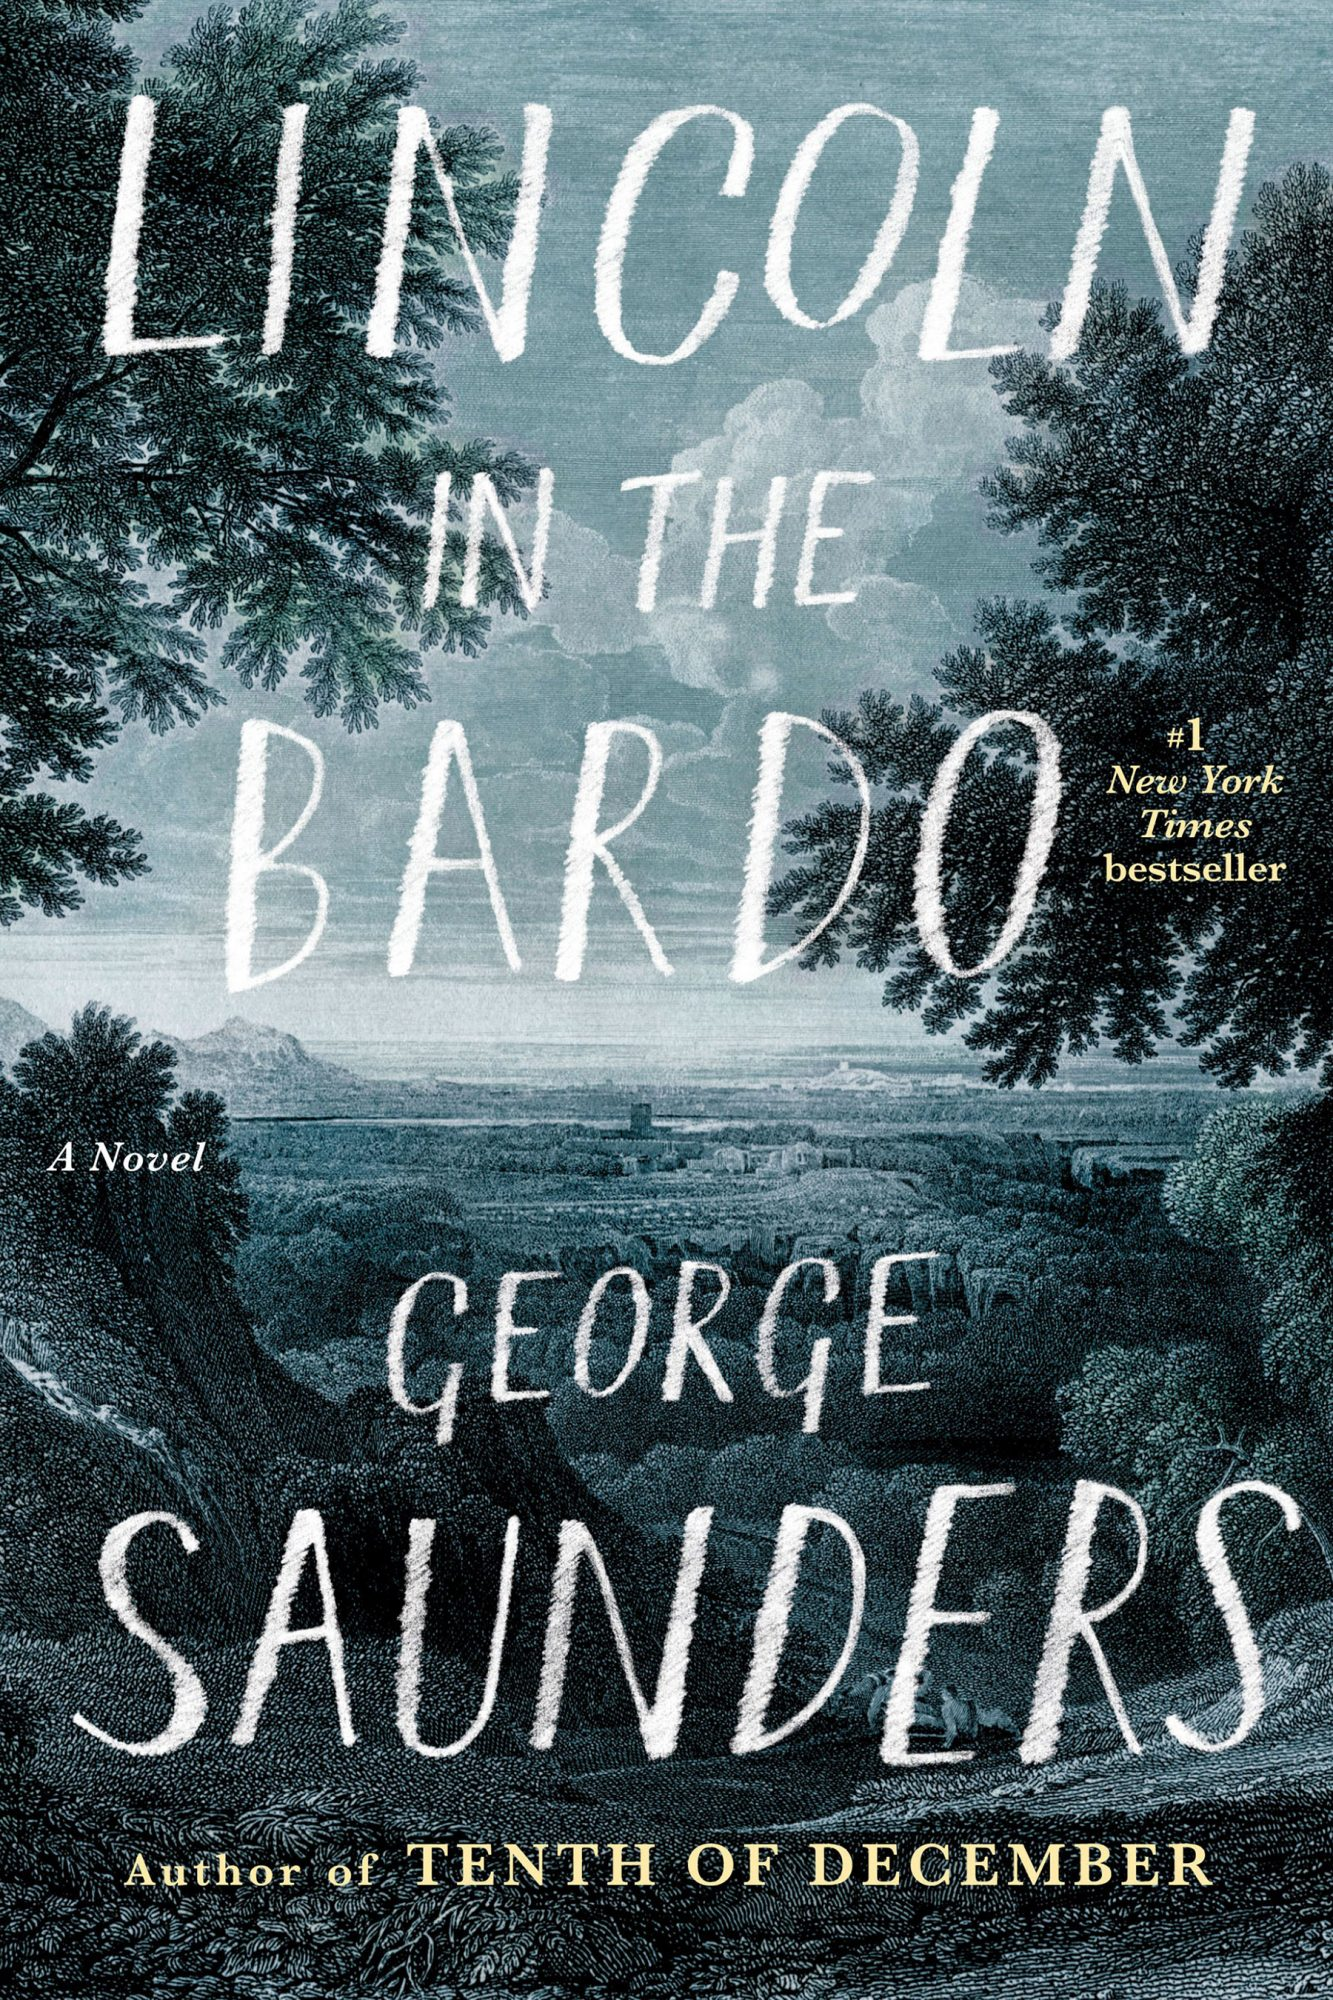 13-summer-reading-lincoln-in-the-bardo-george-saunders